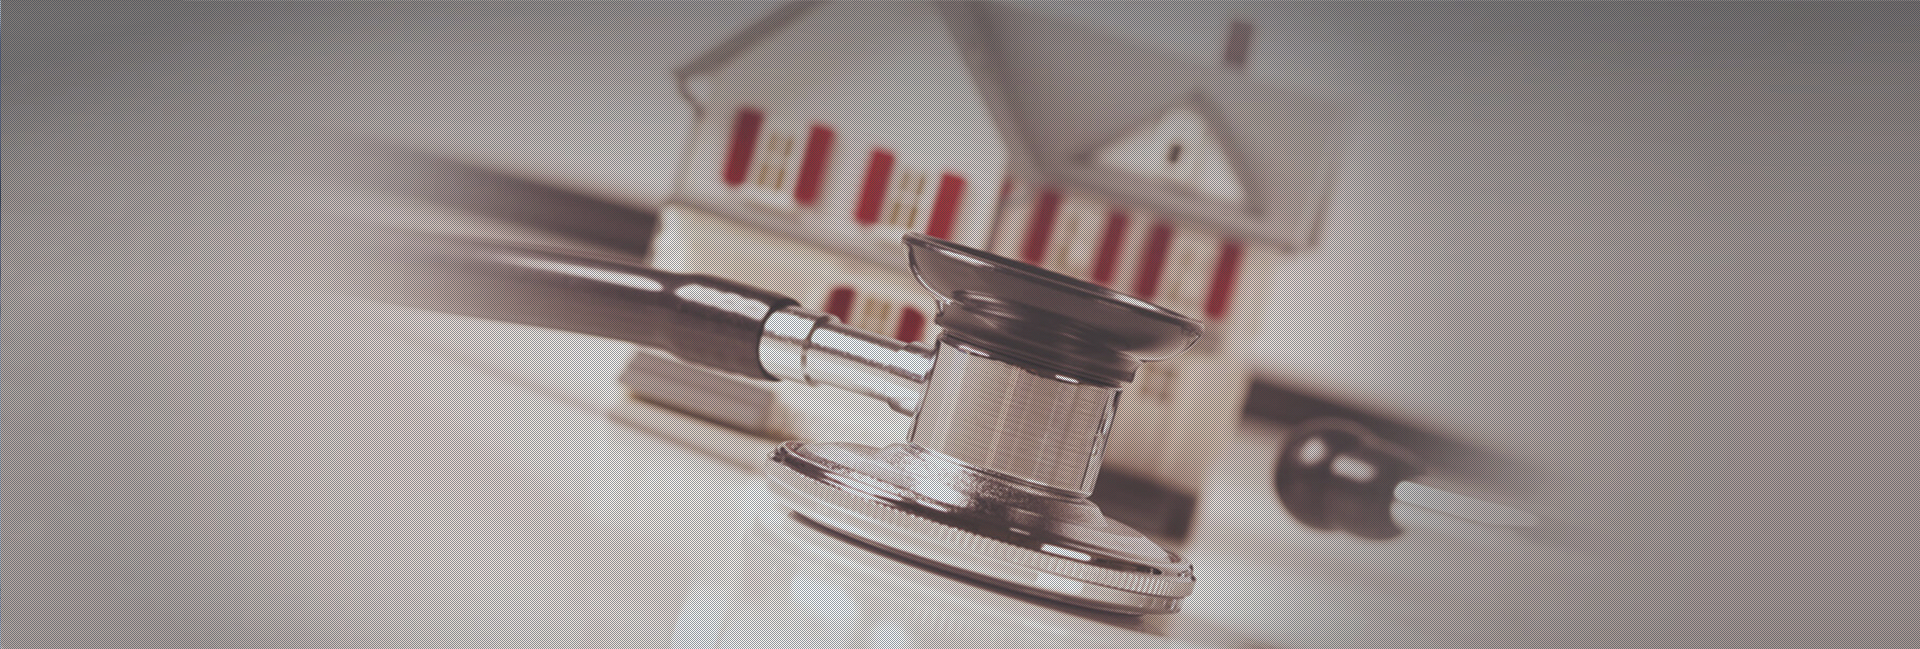 Diagnostic immobilier Smarves